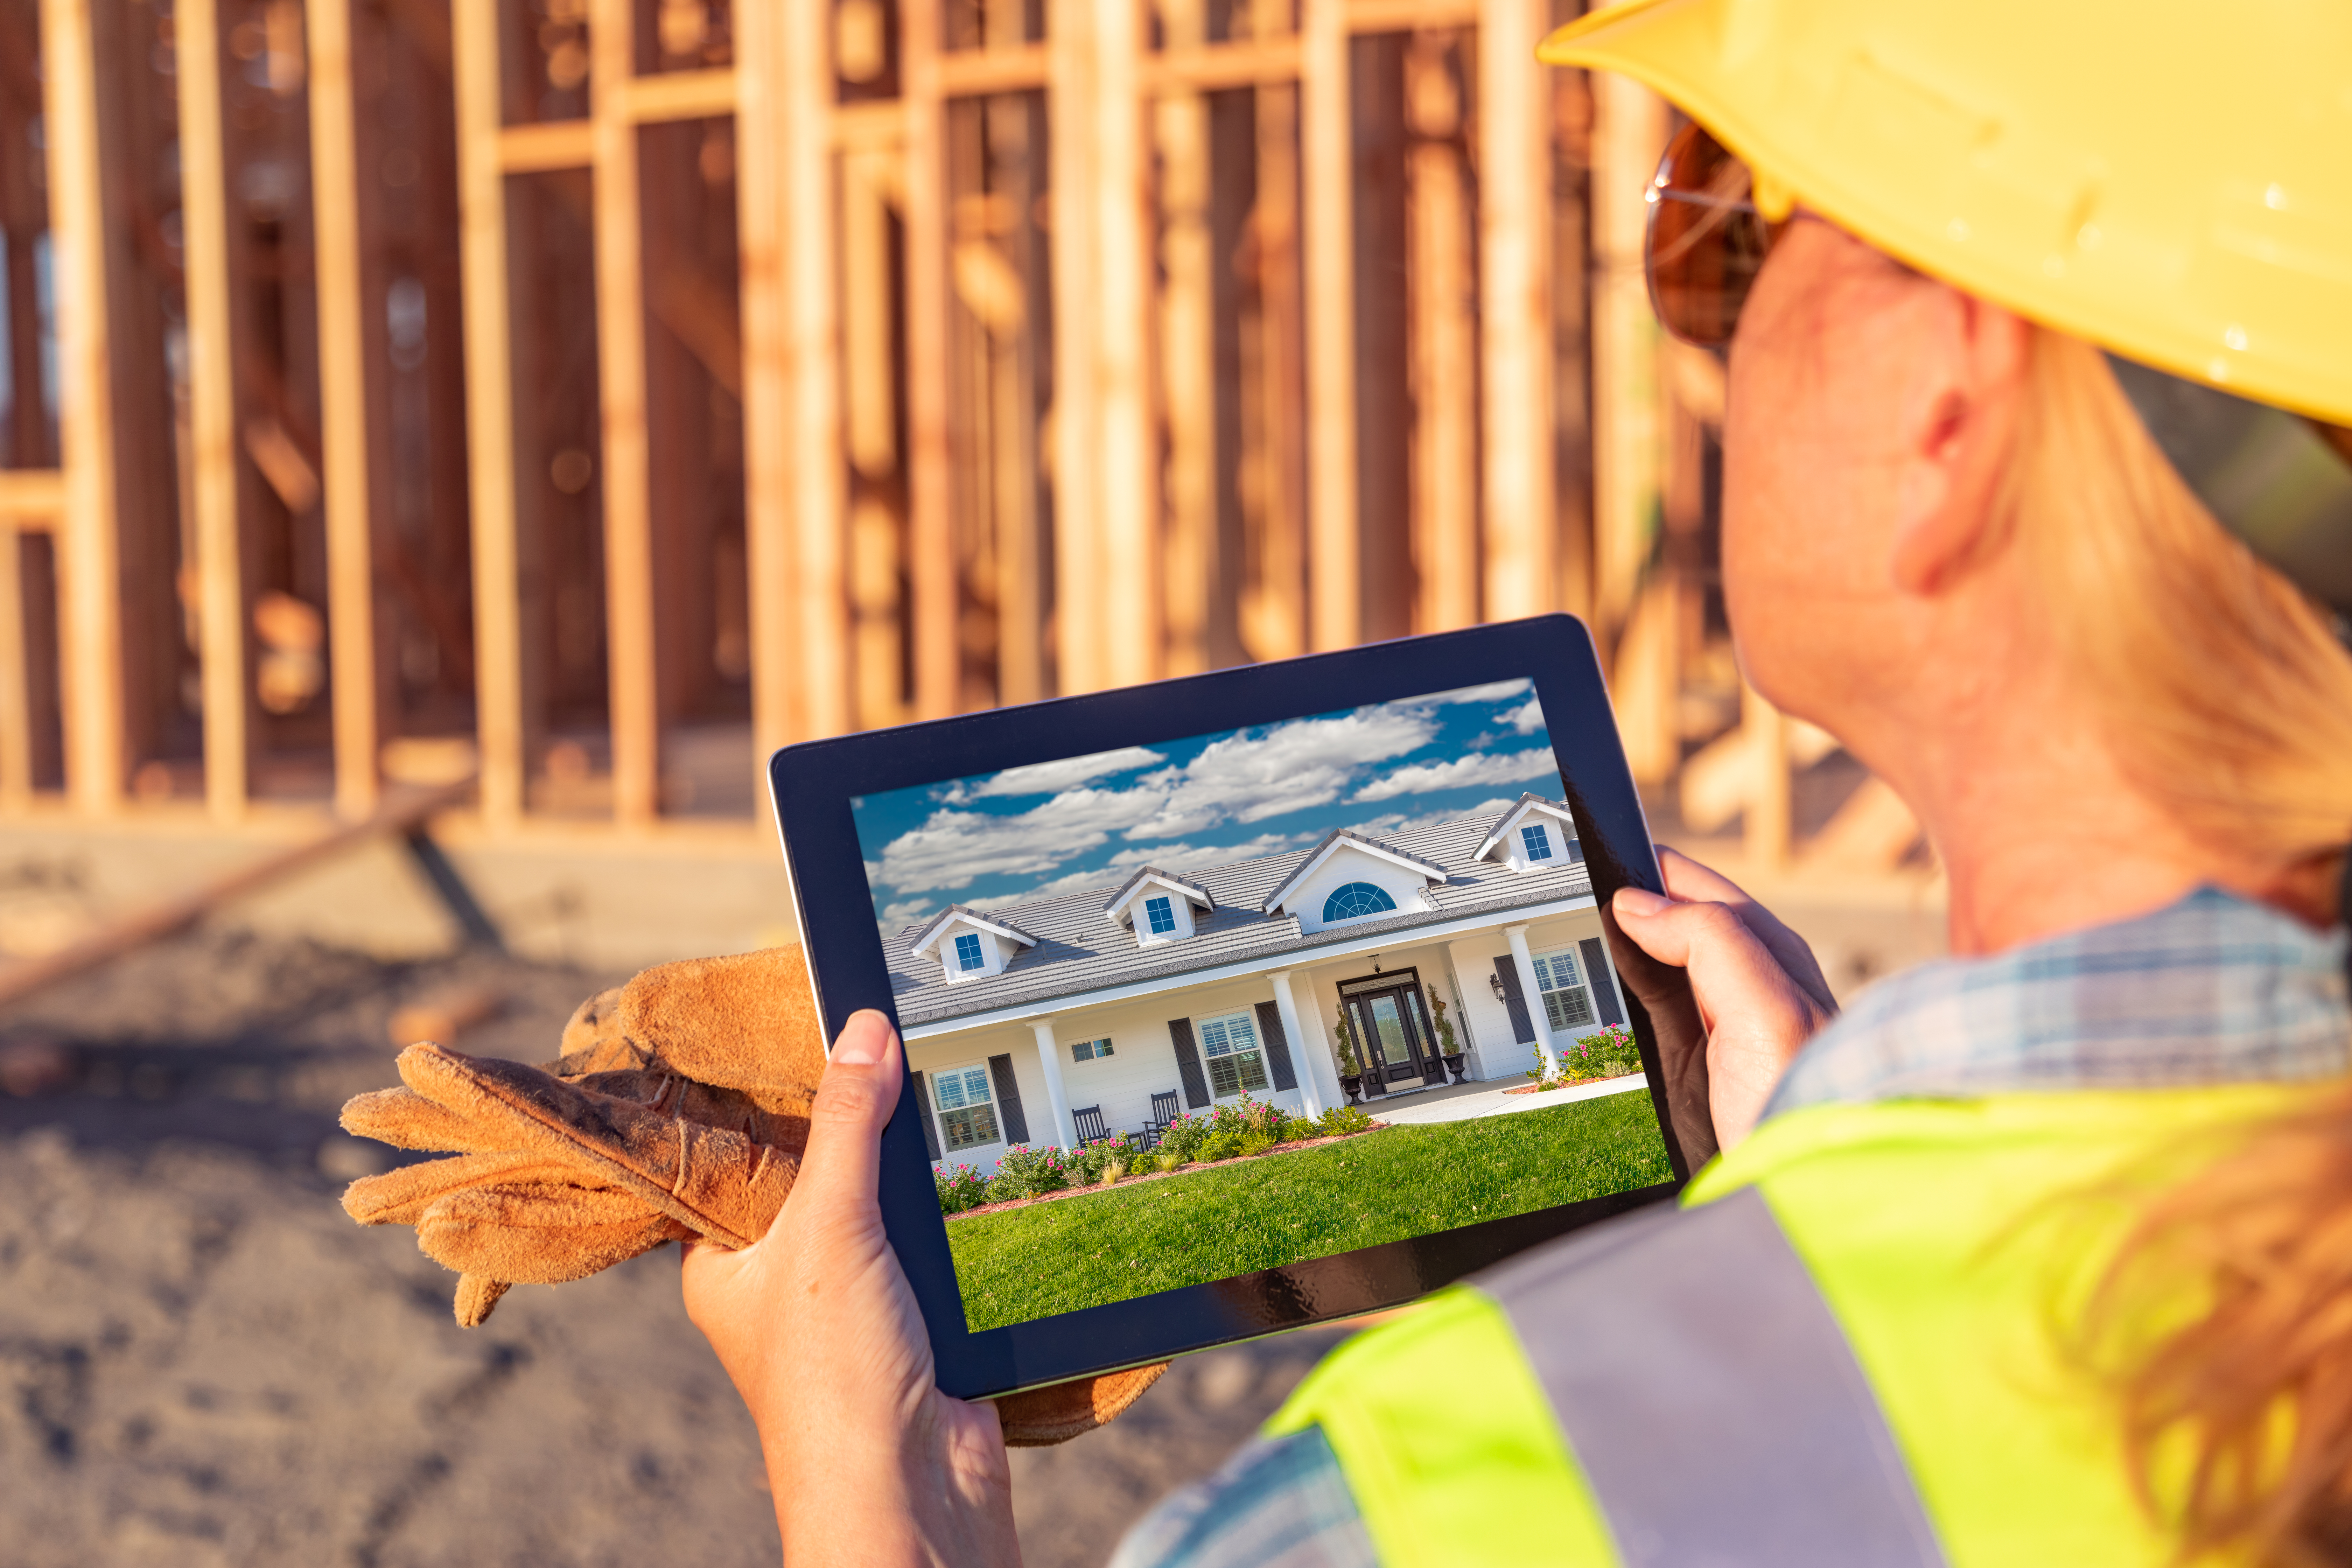 Female Construction Worker Reviewing House Photo on Computer Pad at Construction Site